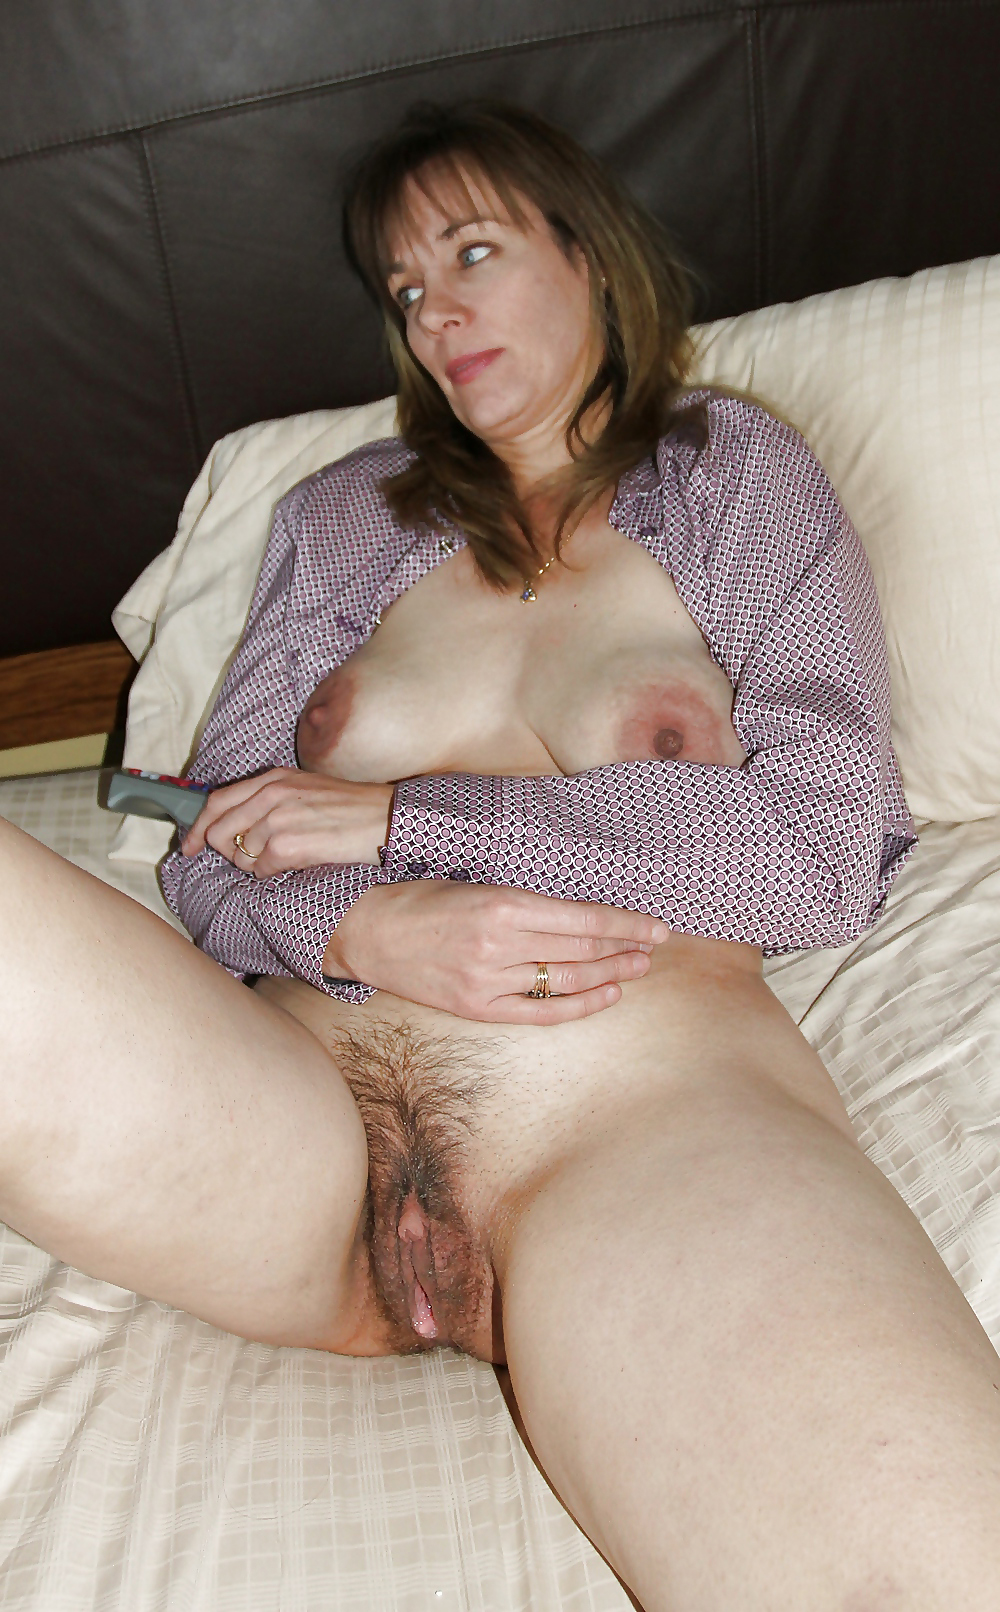 Free private sex shows